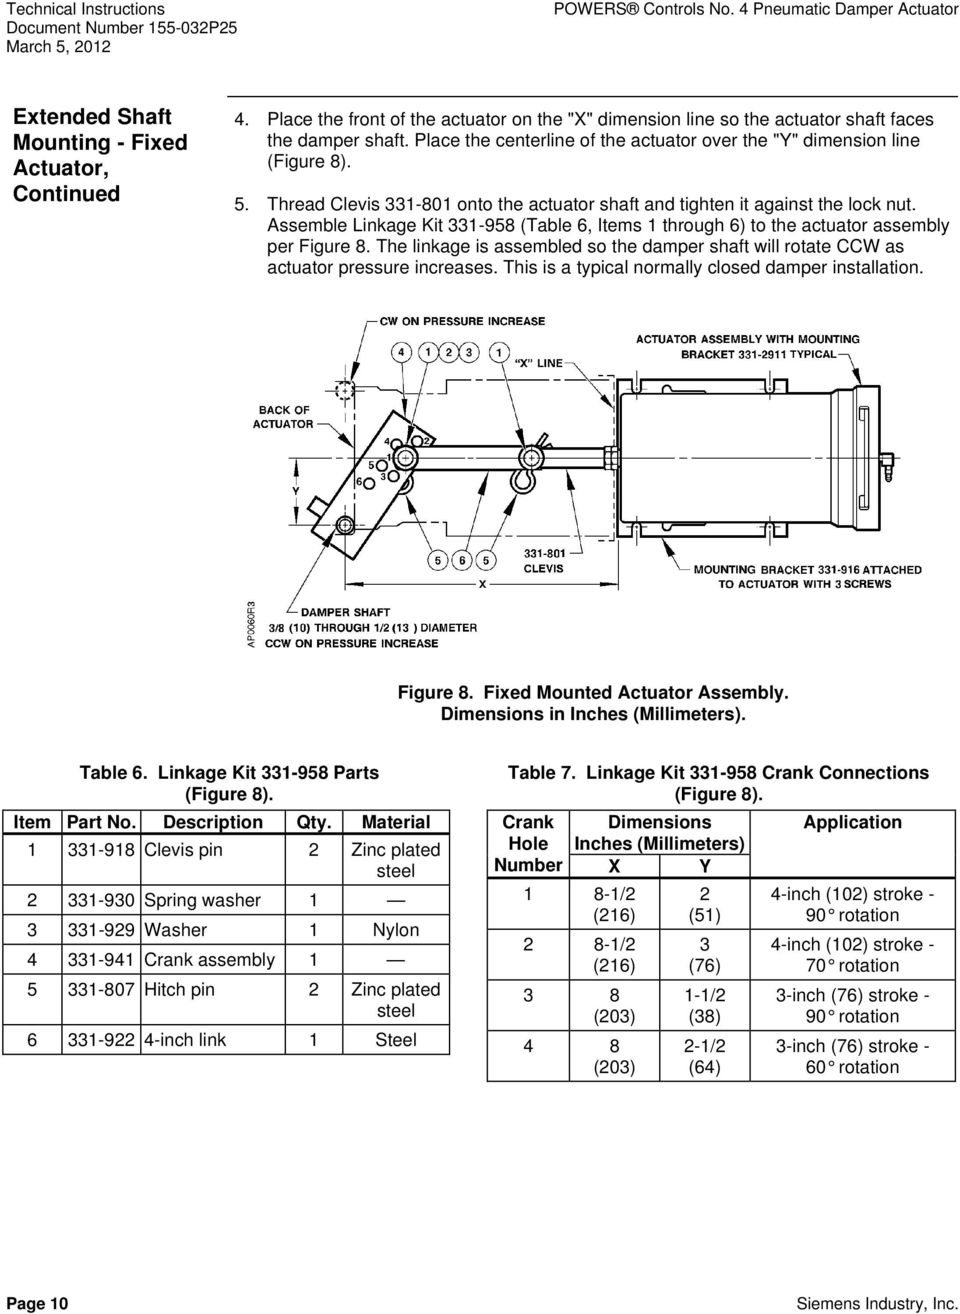 Thread Clevis 331-801 onto the actuator shaft and tighten it against the lock nut. Assemble Linkage Kit 331-958 (Table 6, Items 1 through 6) to the actuator assembly per Figure 8.